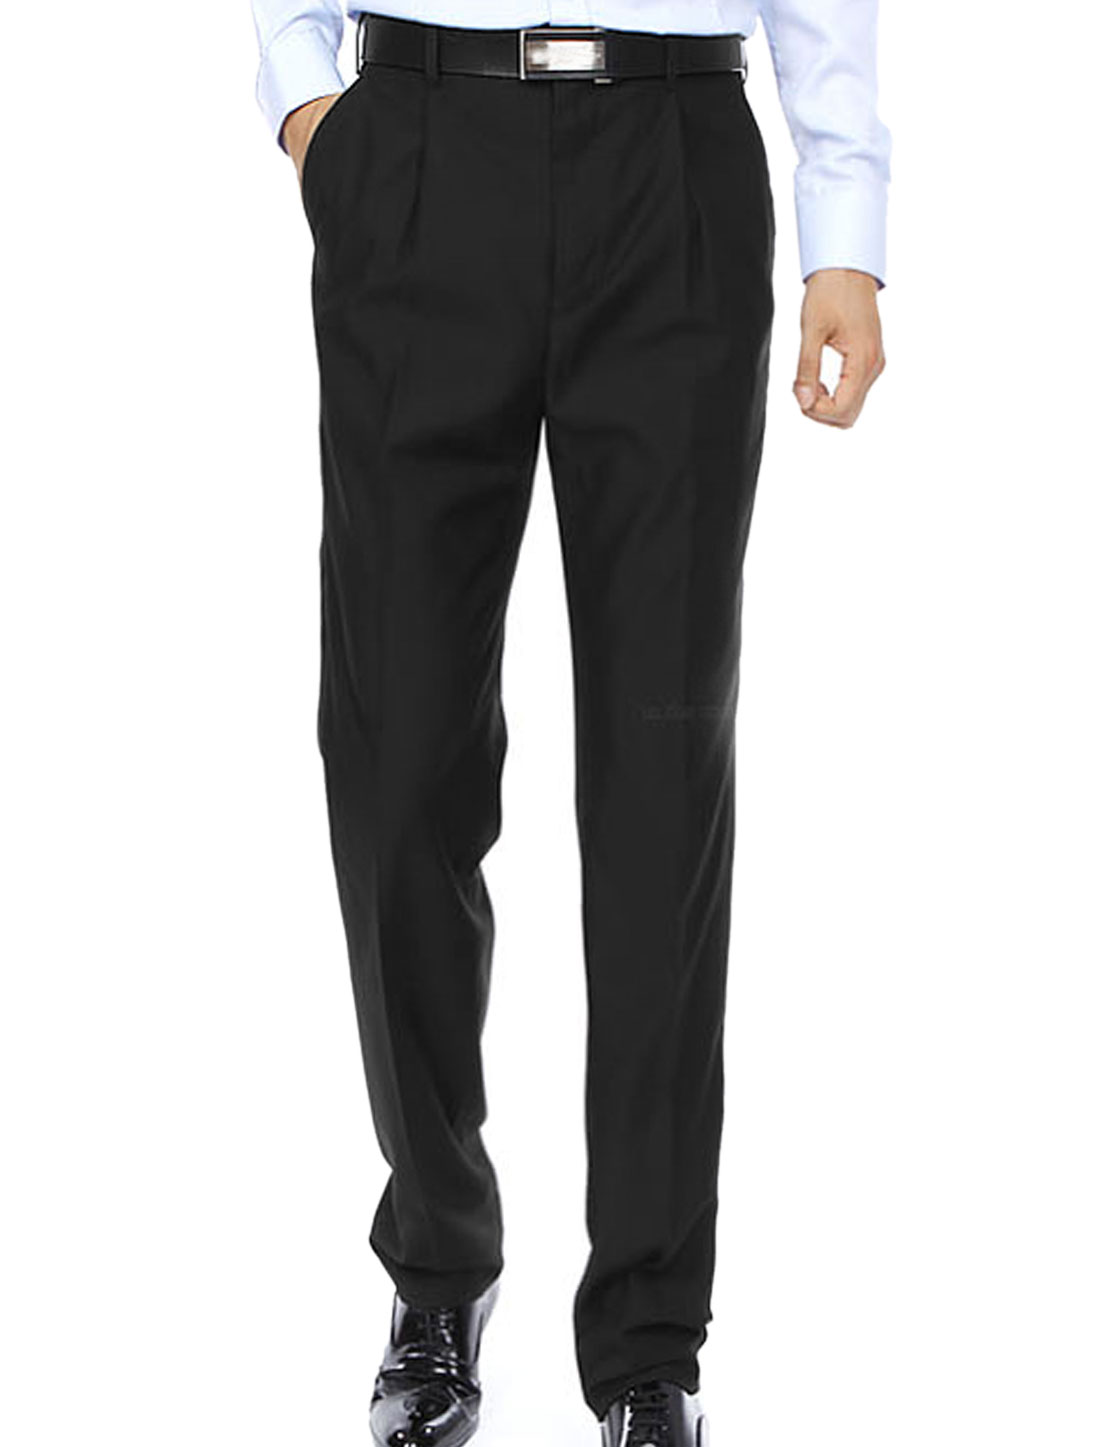 Men Hook Eye Closed Button Through Pocket Back Flat Front Dress Pants Black W36